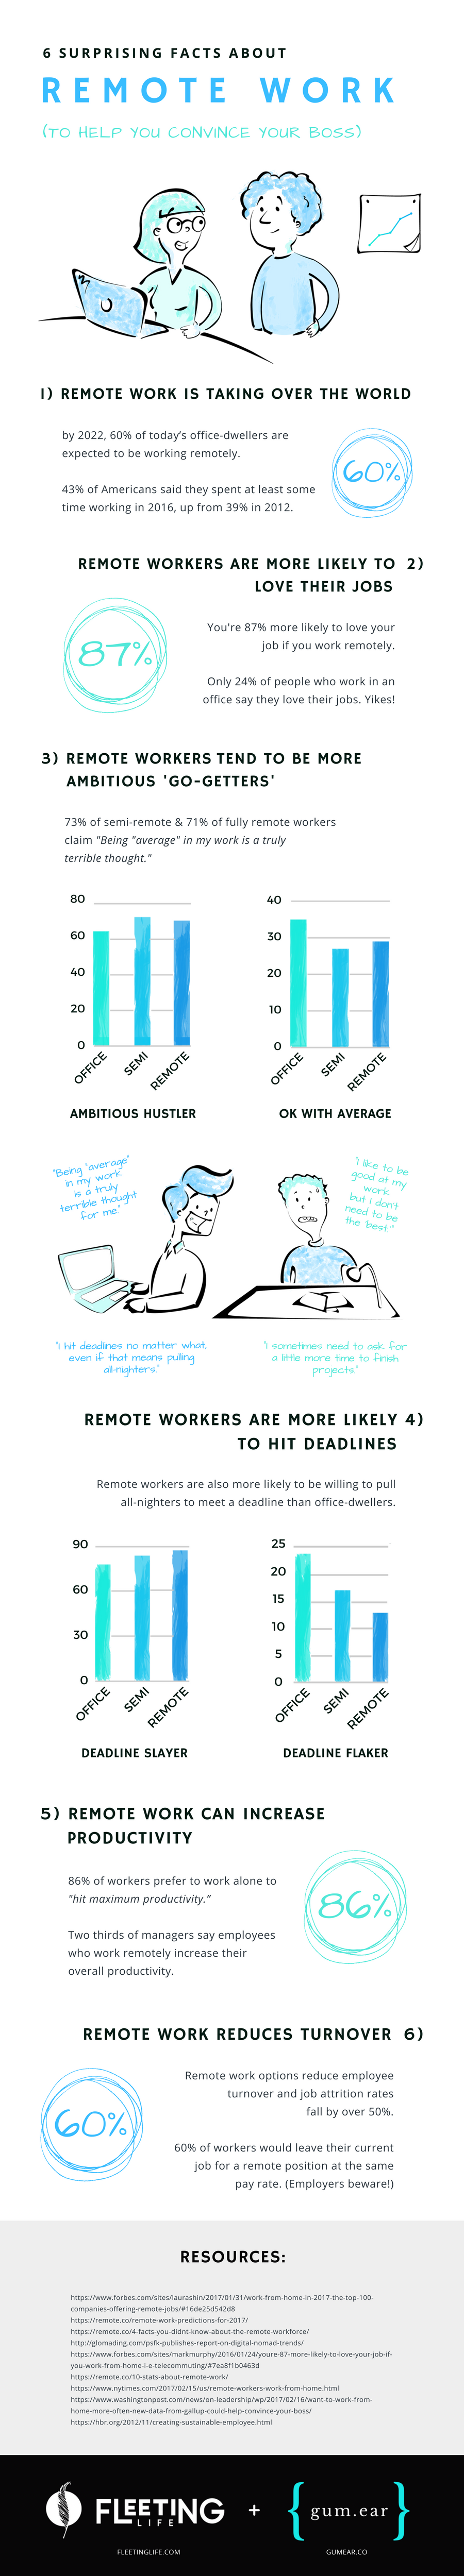 Infographic 10 surprising facts remote work (12)